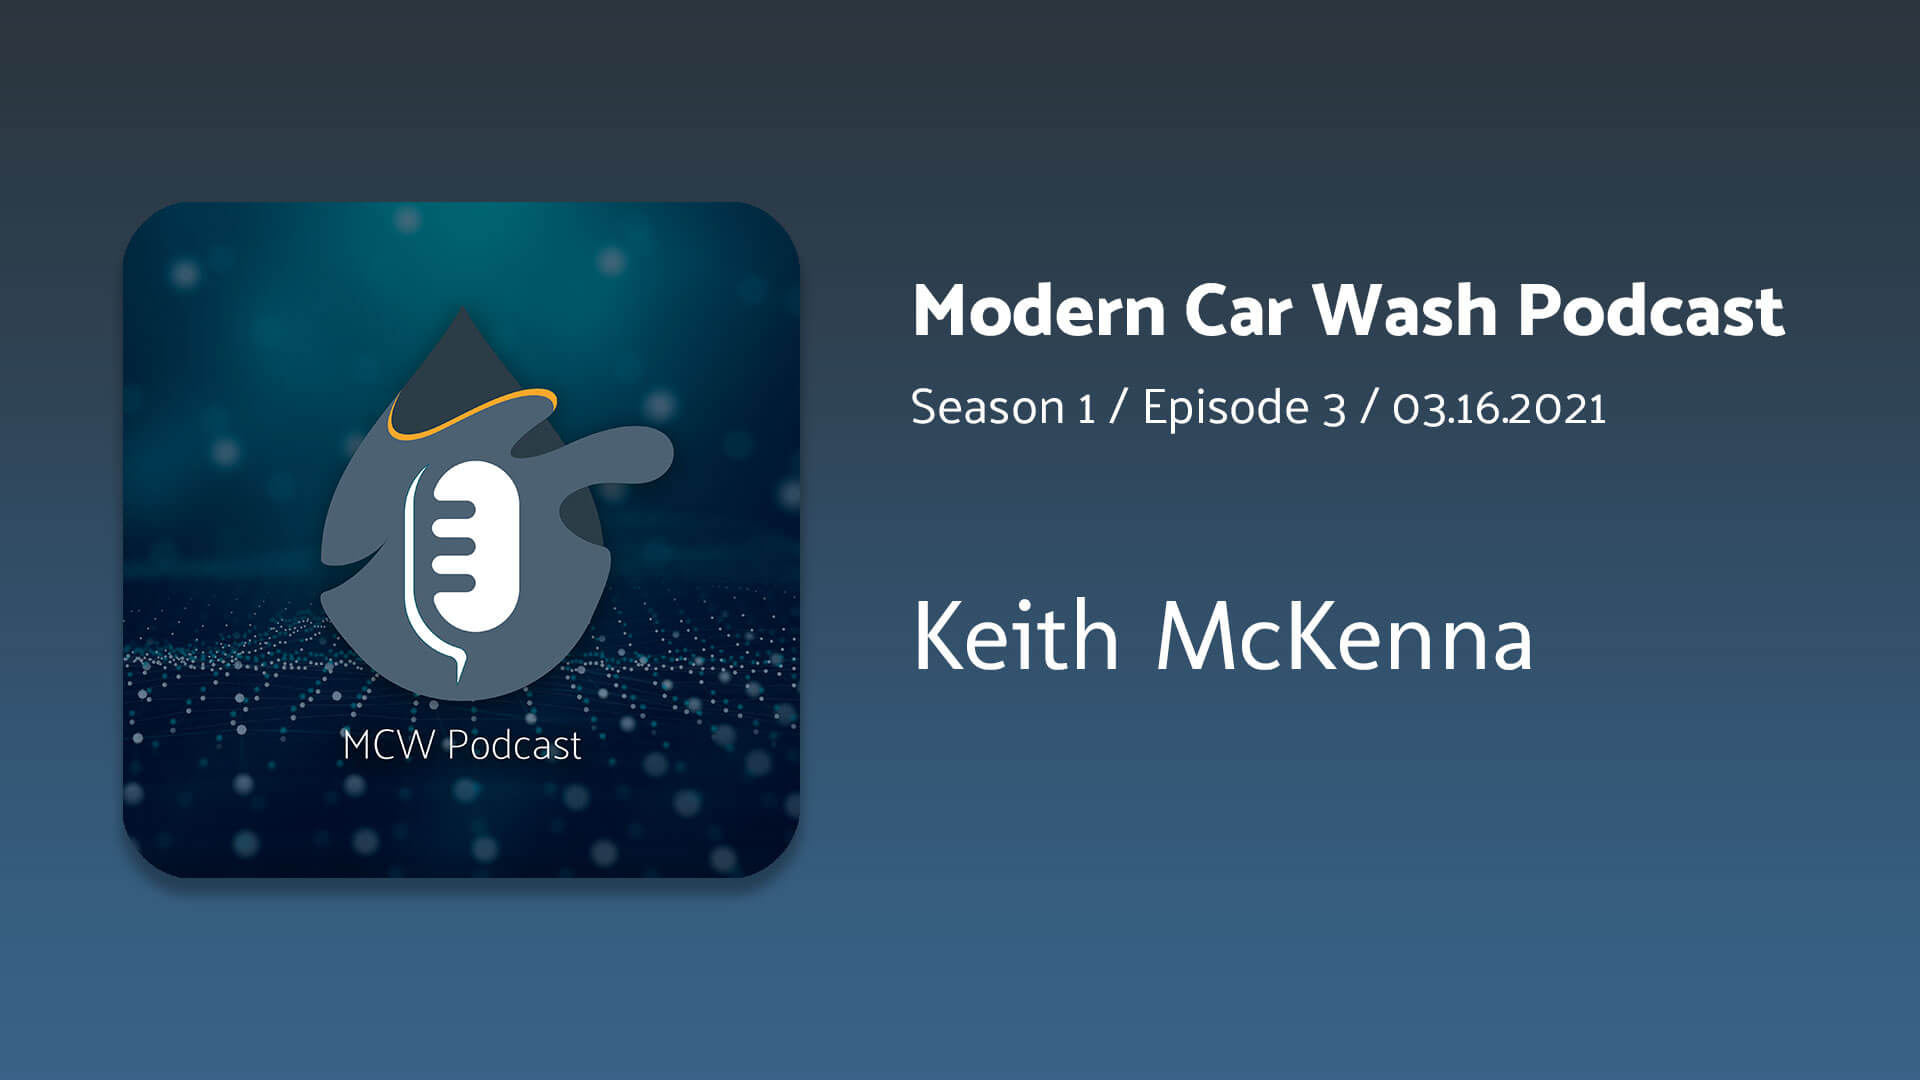 Keith McKenna Podcast Info